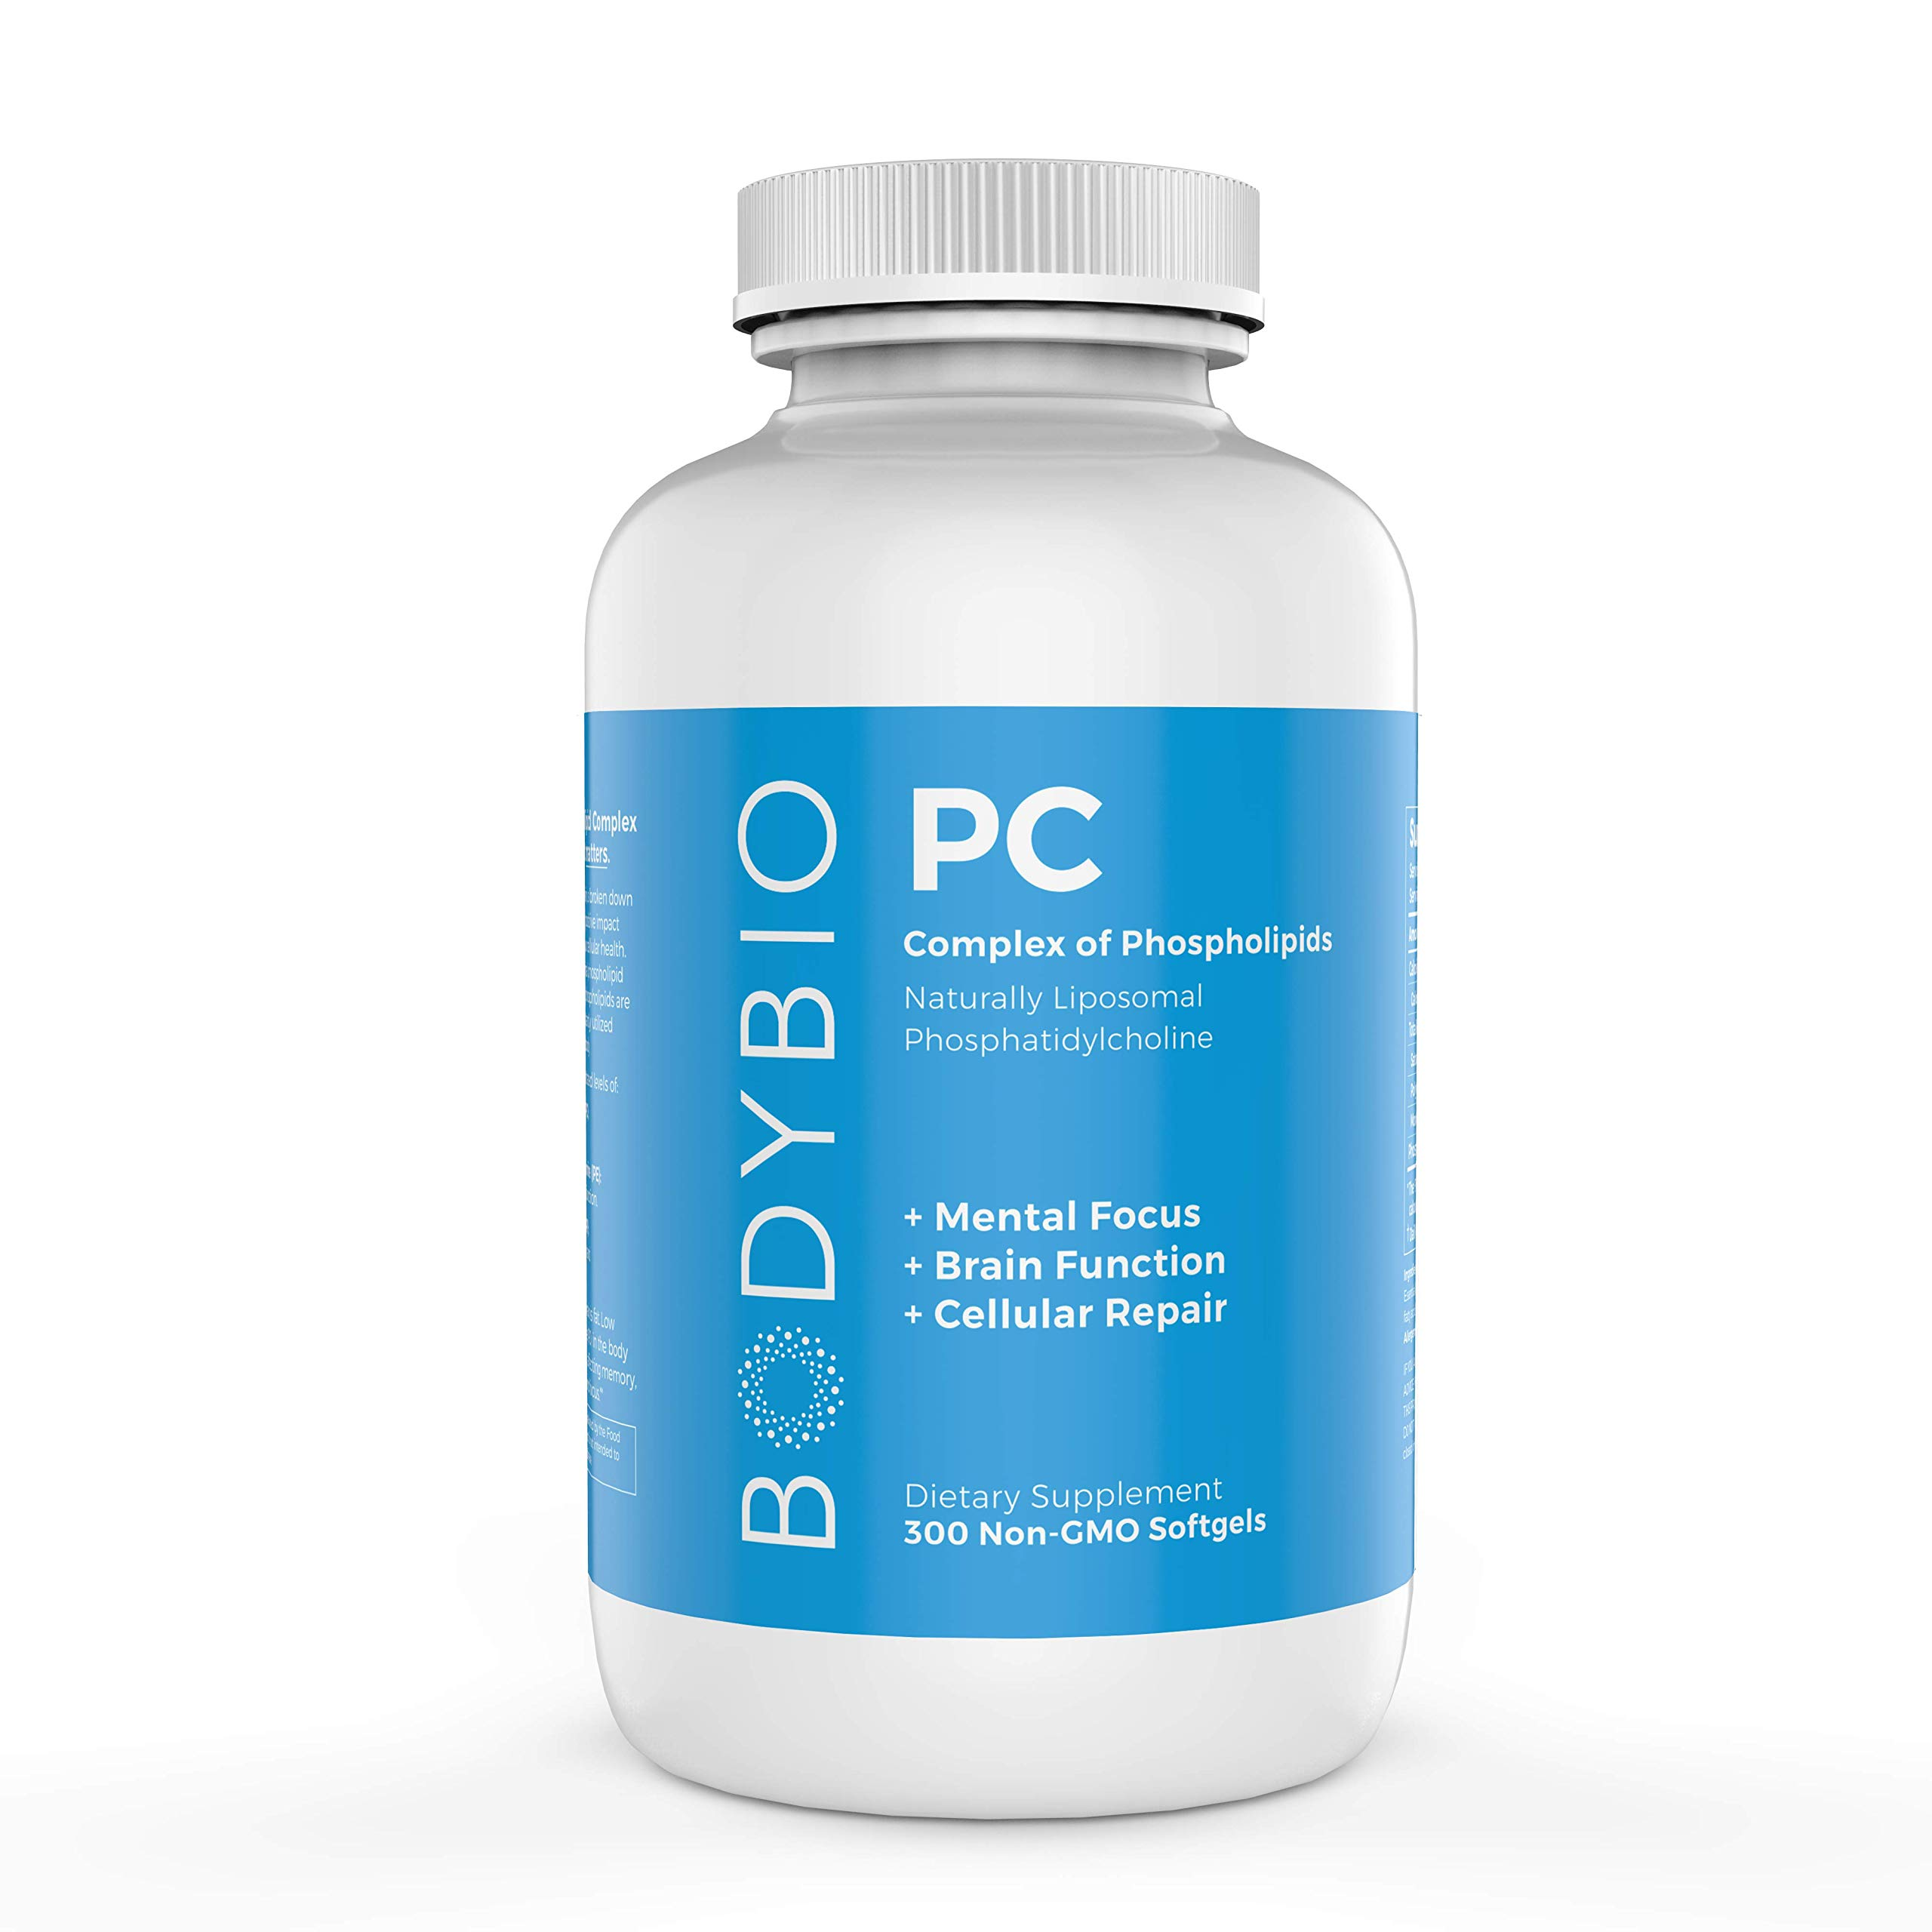 BodyBio - PC Phosphatidylcholine, Liposomal Phospholipid Complex for Cell Health - Enhance Brain Function, Focus, Memory & Clarity - Microbiome Support - Science & Research Backed - 300 Softgels by BodyBio